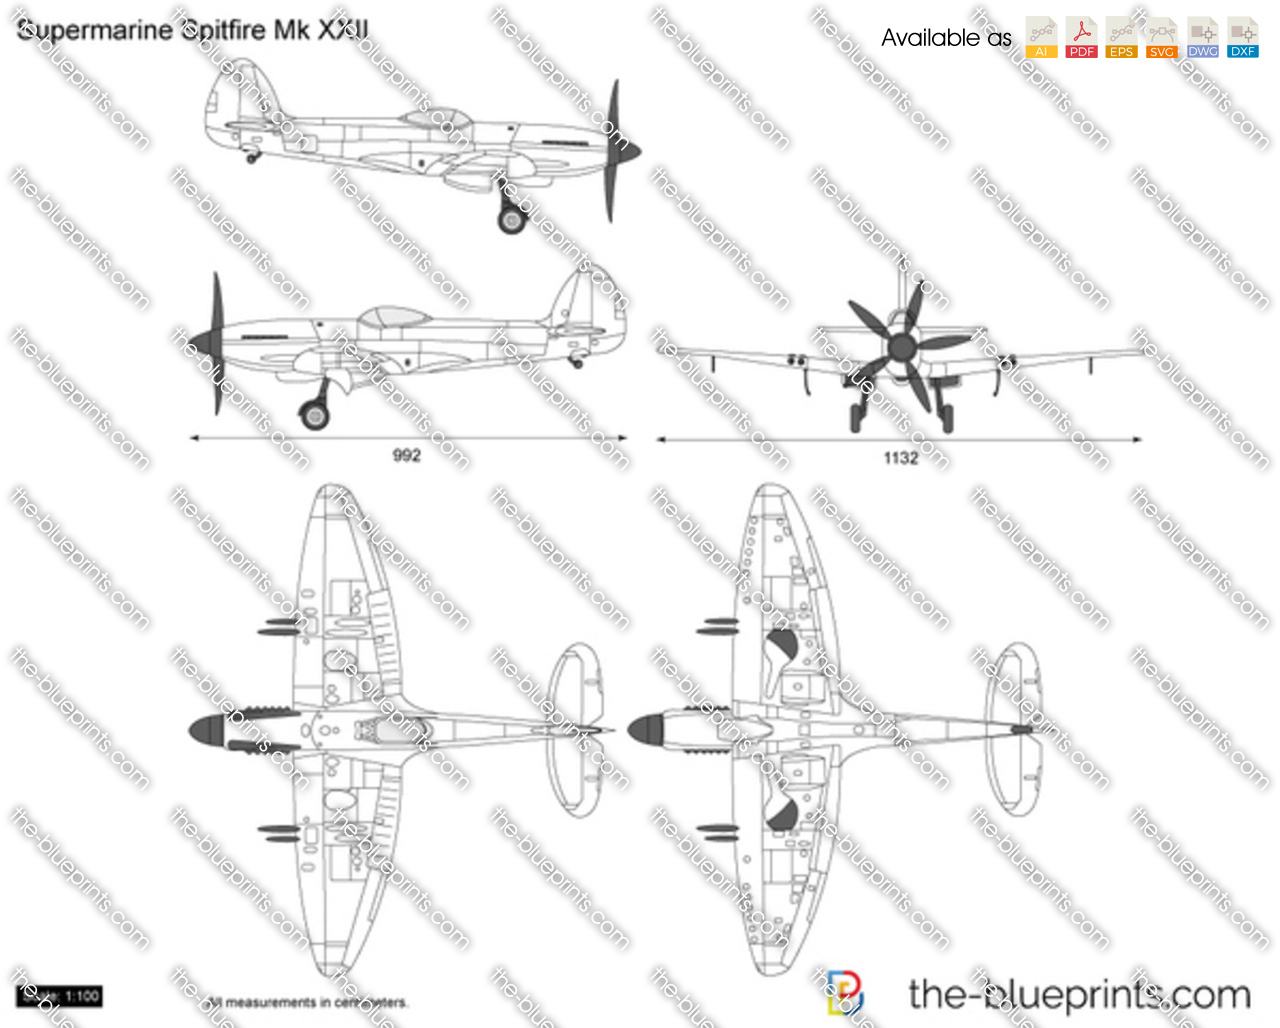 Supermarine Spitfire Plans Drawings http://www.the-blueprints.com/vectordrawings/show/4014/supermarine_spitfire_mk_xxii/